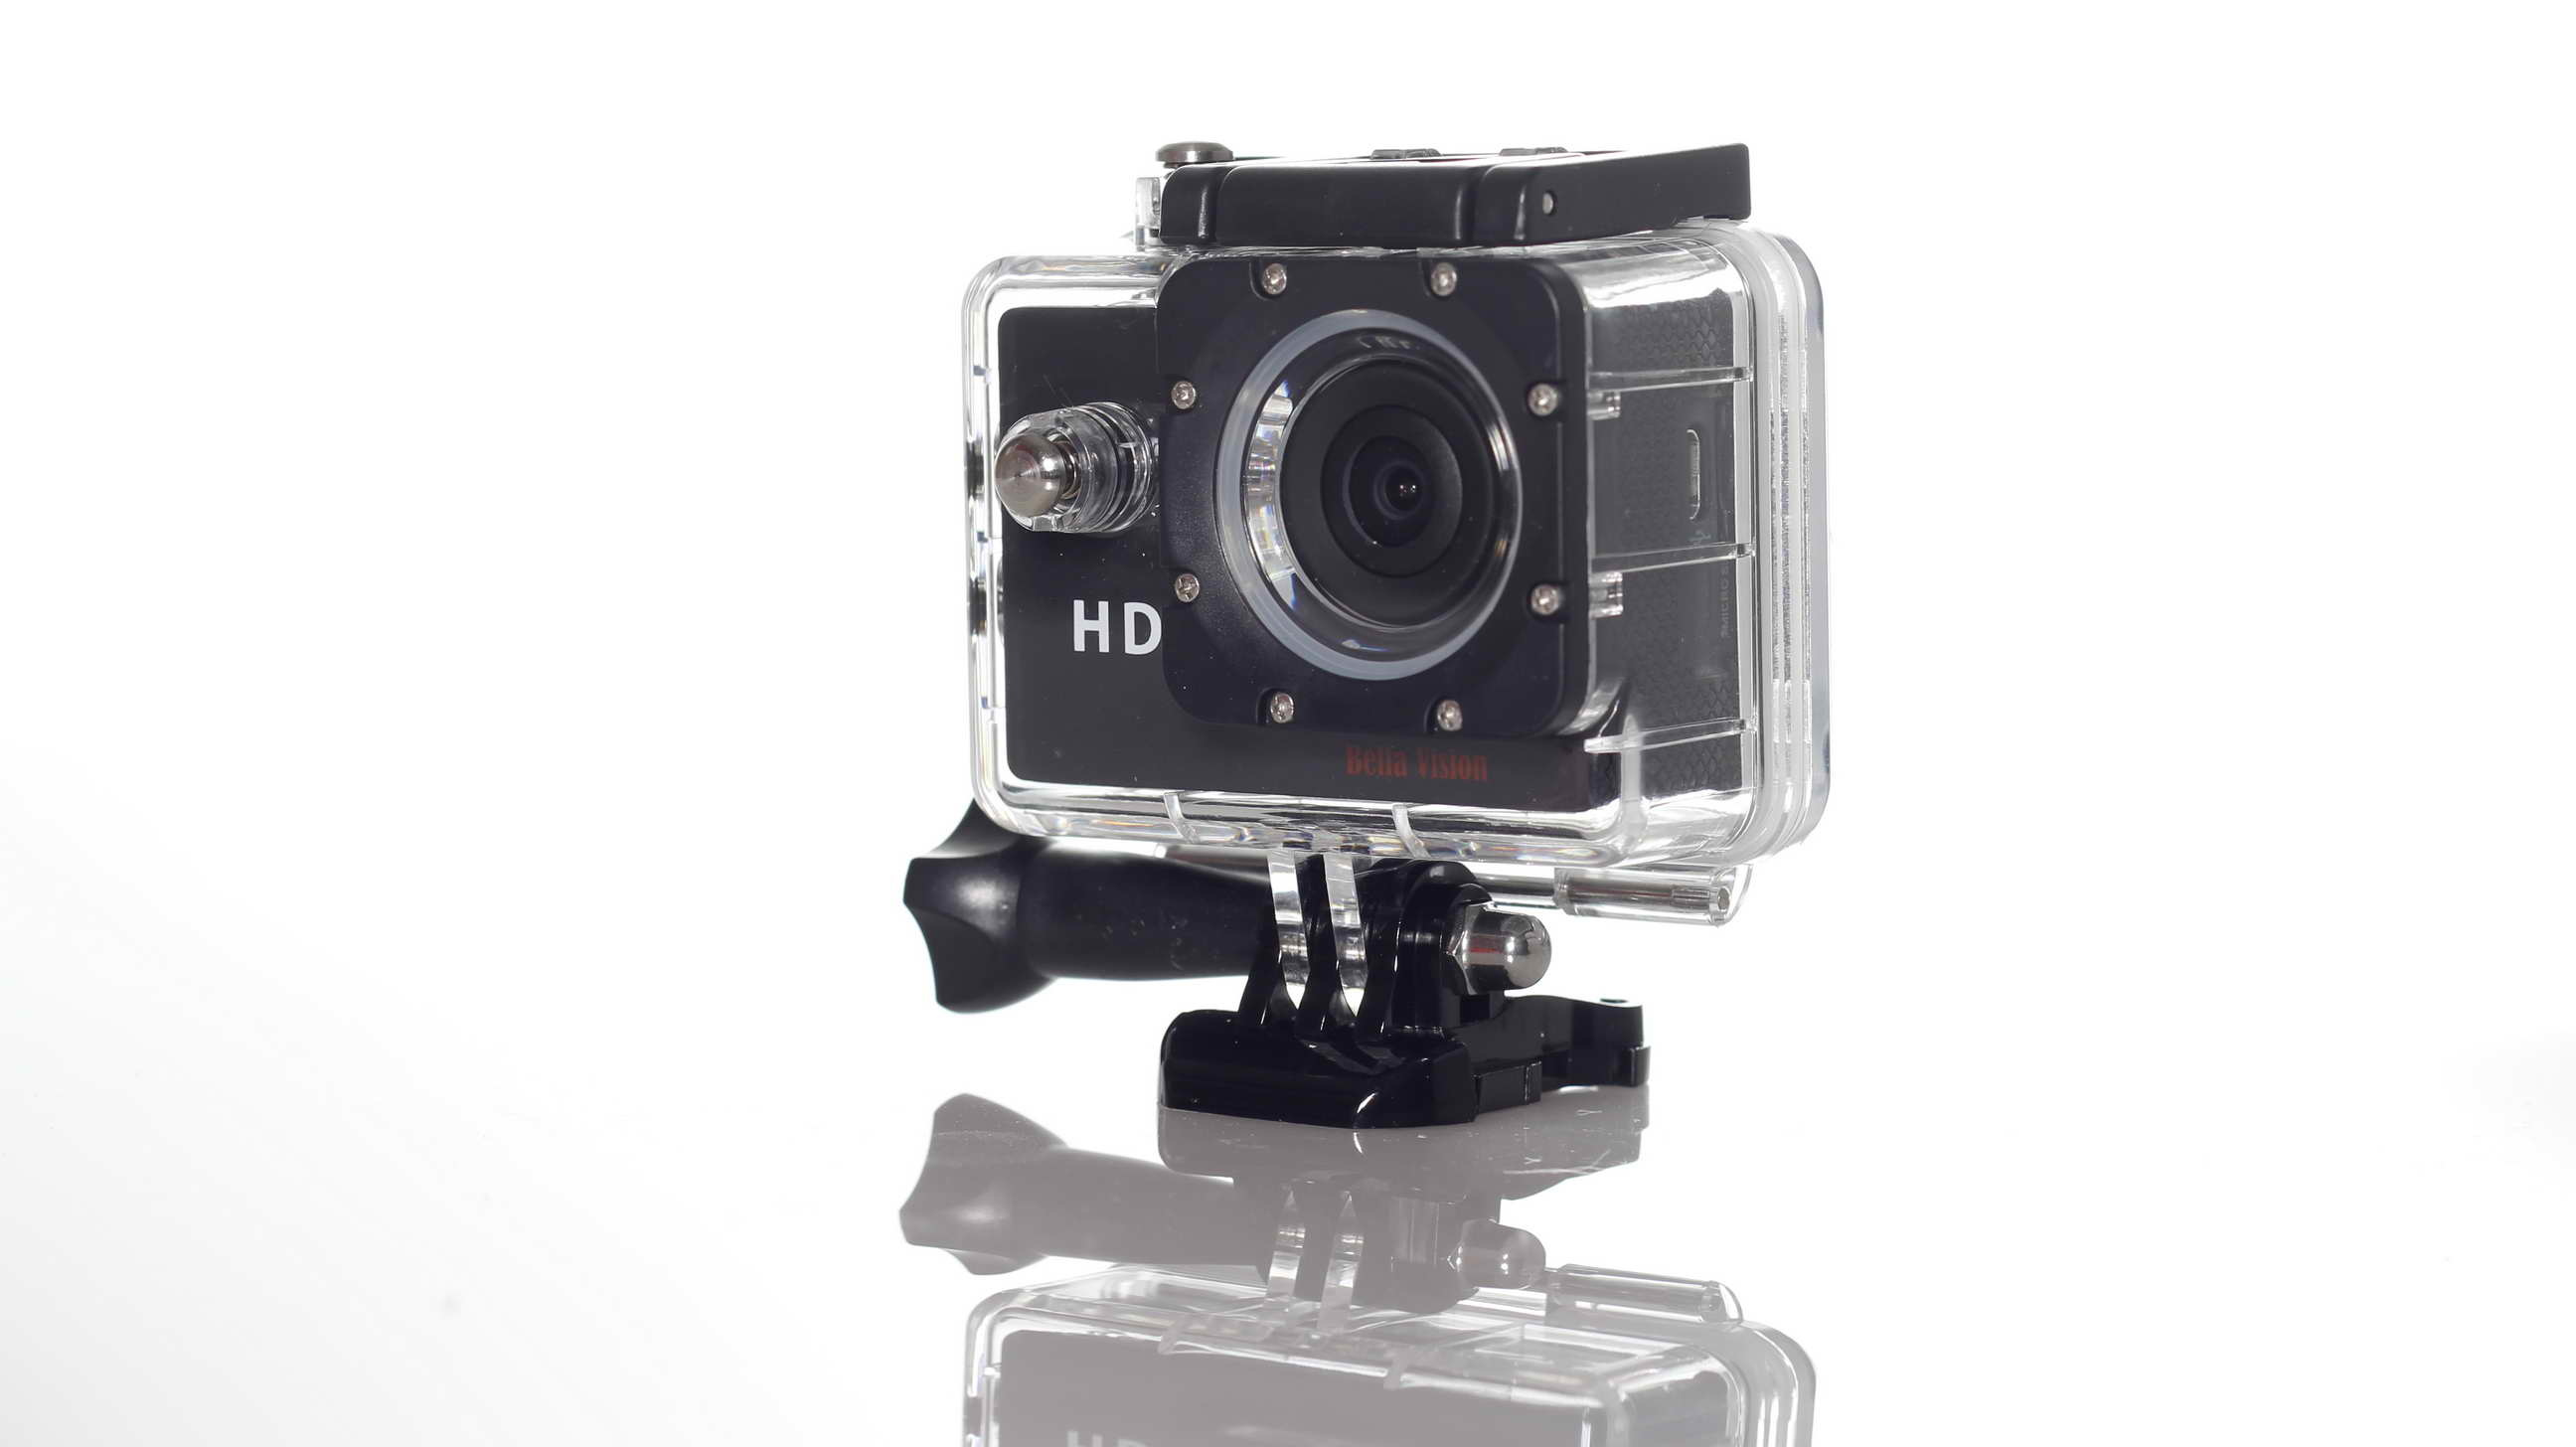 Http List Item Gopro Sjcam Xiaoyi Camera Nanuk 310 Nano Series Waterproof Small Hard Case For Phones And Merah 605538553 06g 0 W St G